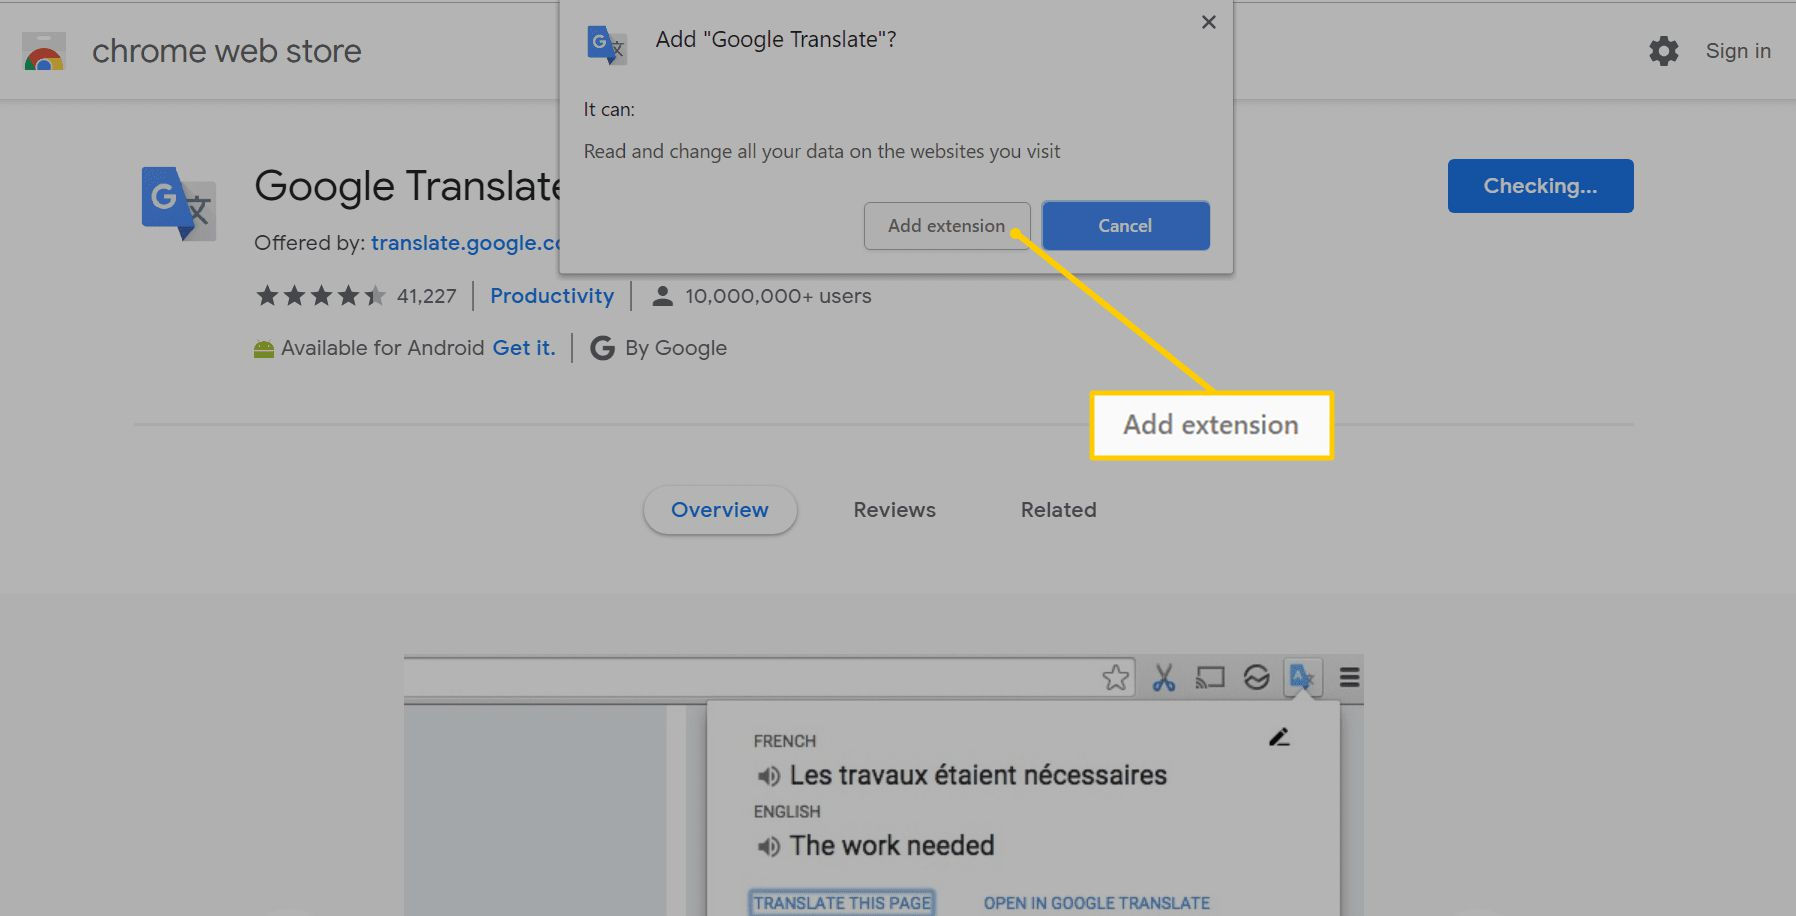 Add extension button in Chrome web store